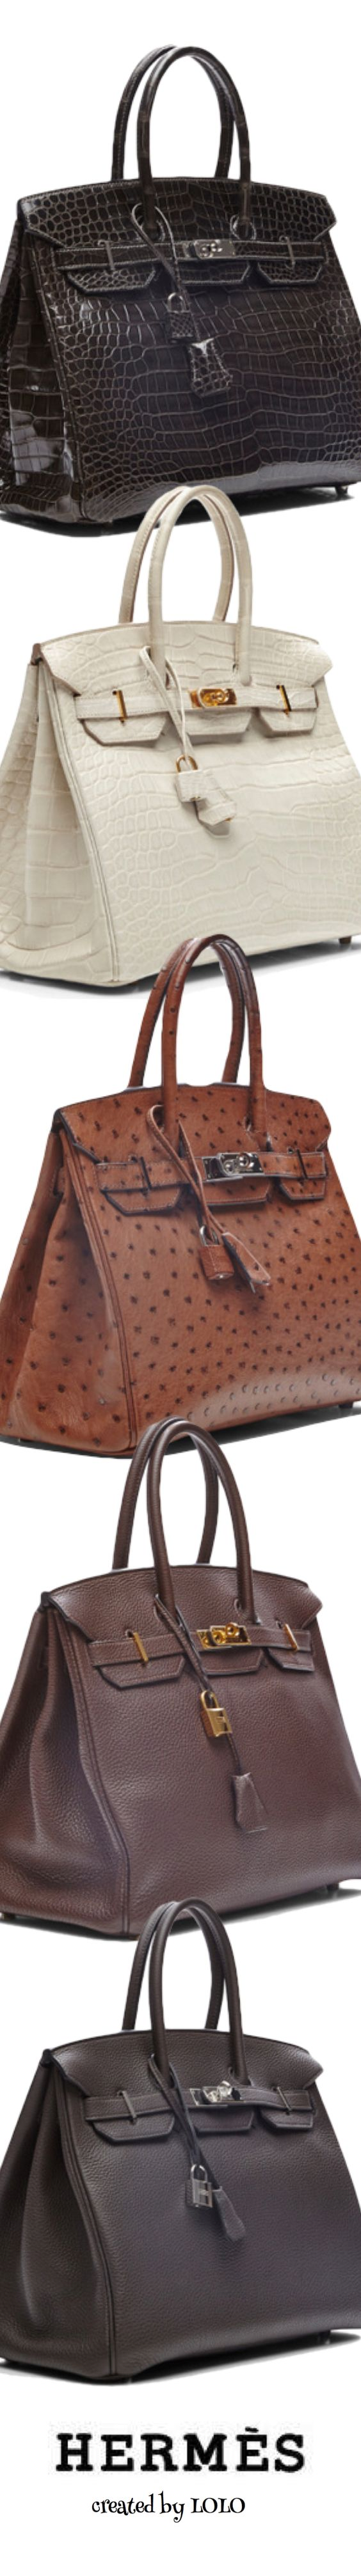 birkin - hermes - bag - bolso - fashion - moda - glamour - complementos www.yourbagyourlife.com / Love Your Bag